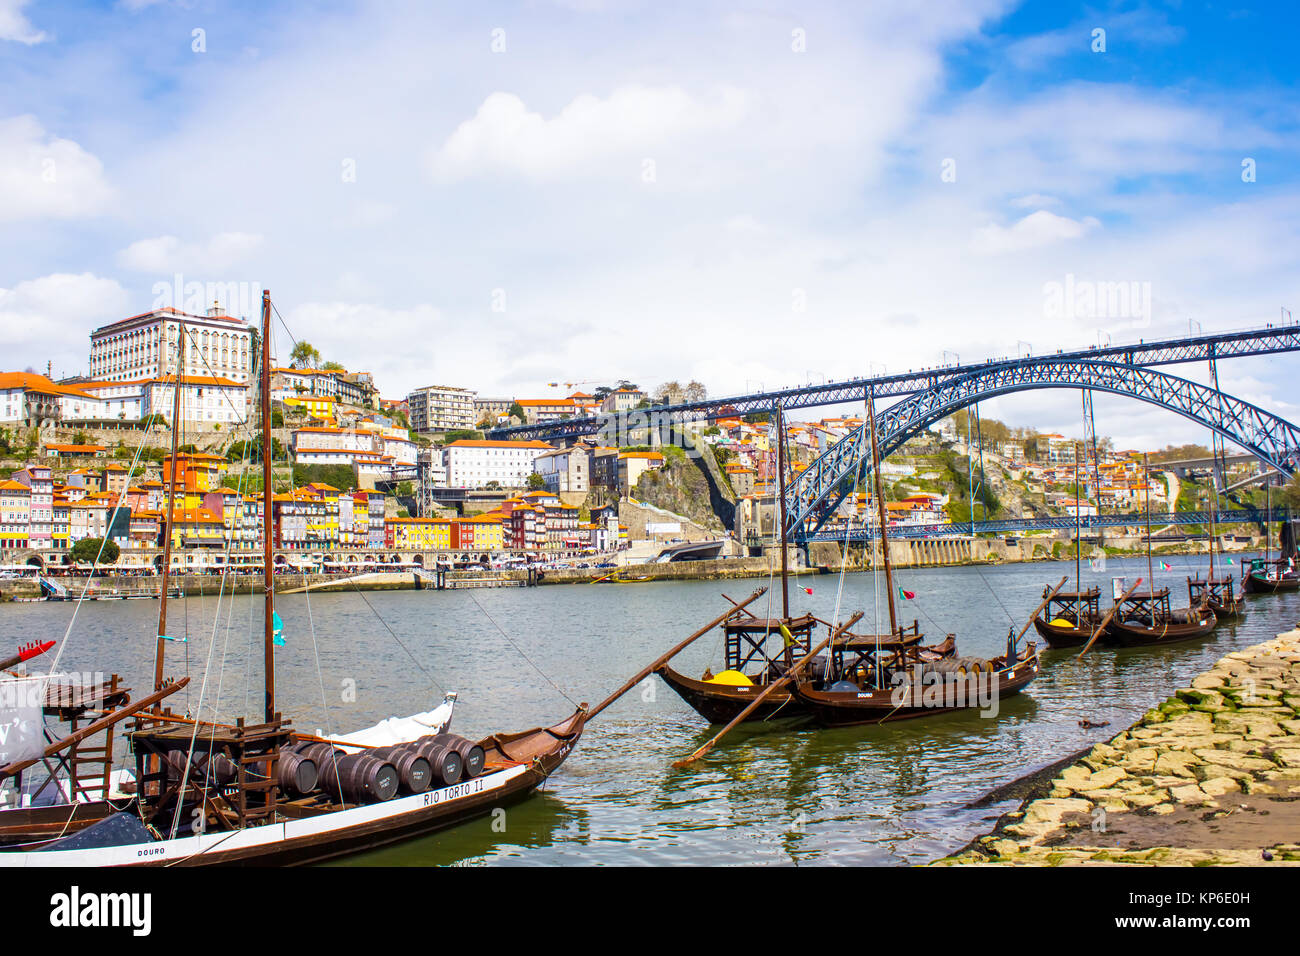 General view of Oporto, Portugal. Are visible the D. Luis bridge, the Douro river and a few boats that used to transport - Stock Image